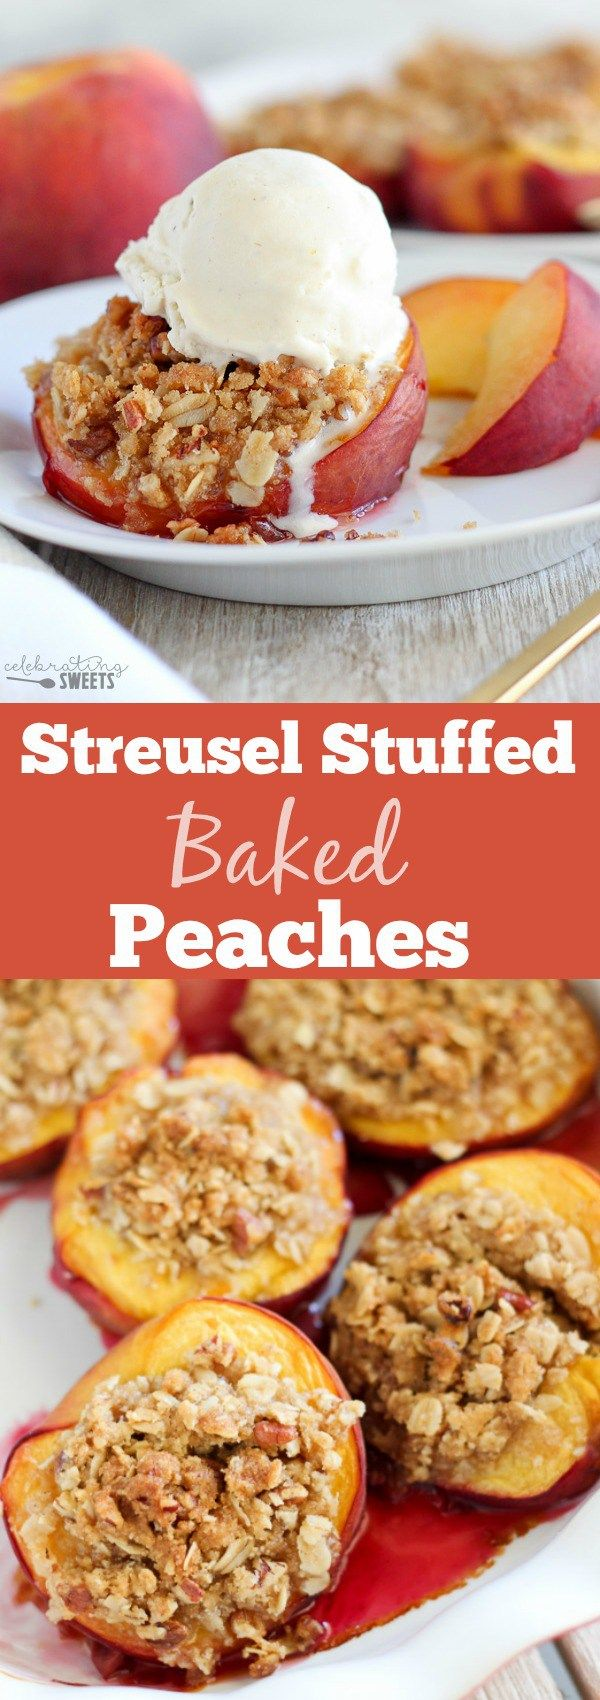 Streusel Stuffed Baked Peaches - Fresh peaches filled with a brown sugar cinnamon pecan streusel and baked until juicy and bubbly. Serve warm topped with vanilla ice cream! (Icecream Recipes Cinnamon)